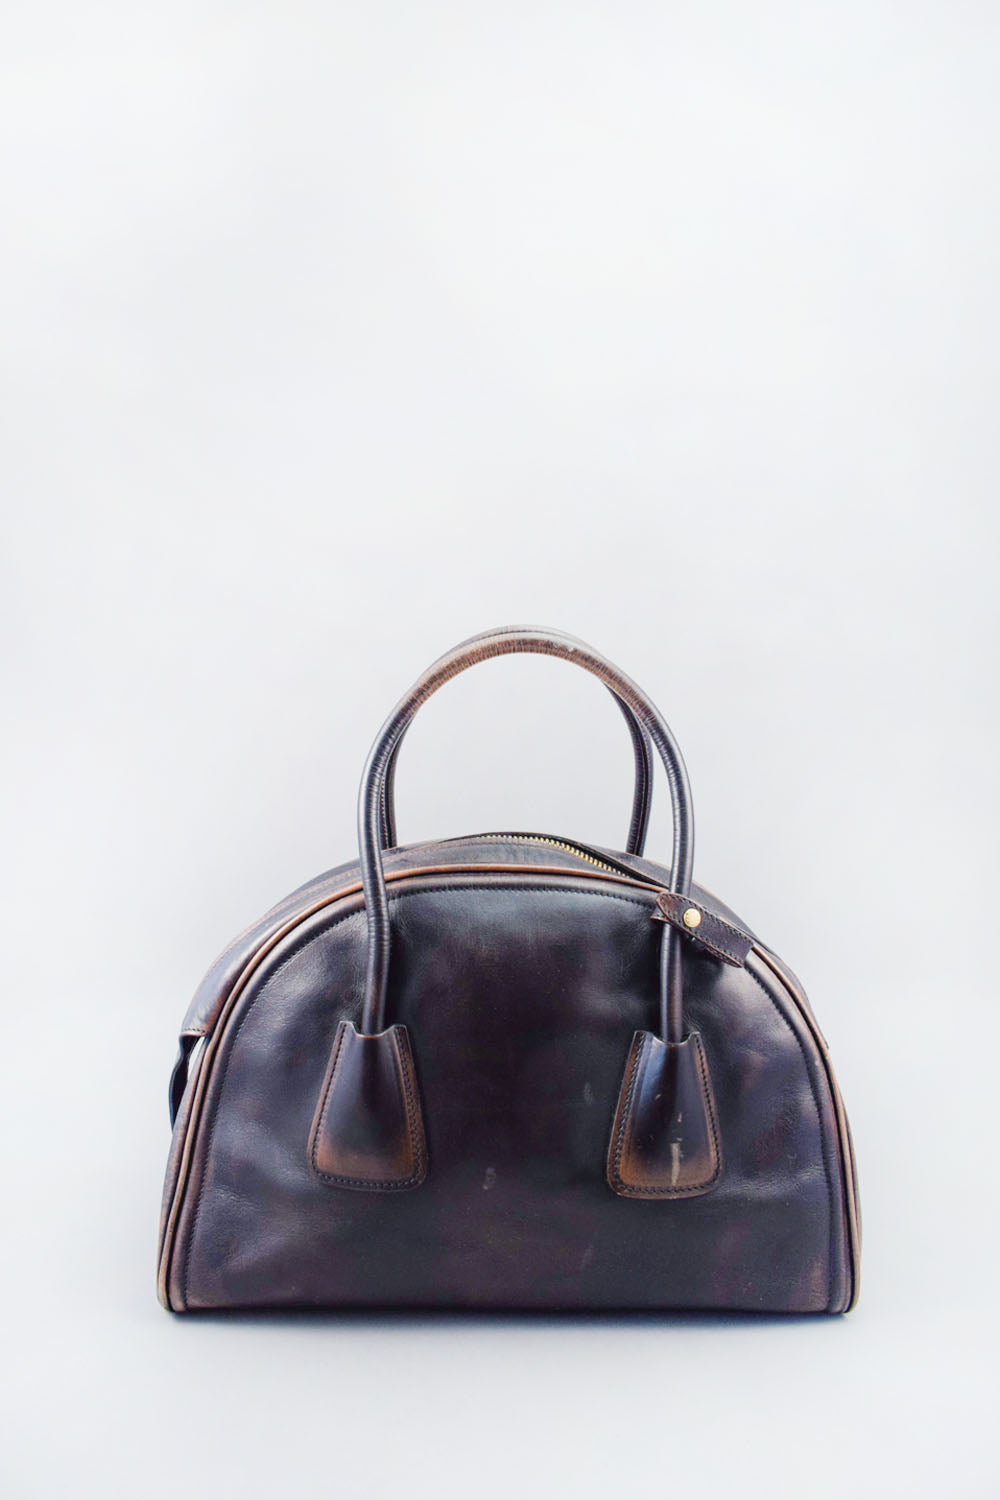 Prada Limited Edition Black/Brown Bowling Bag